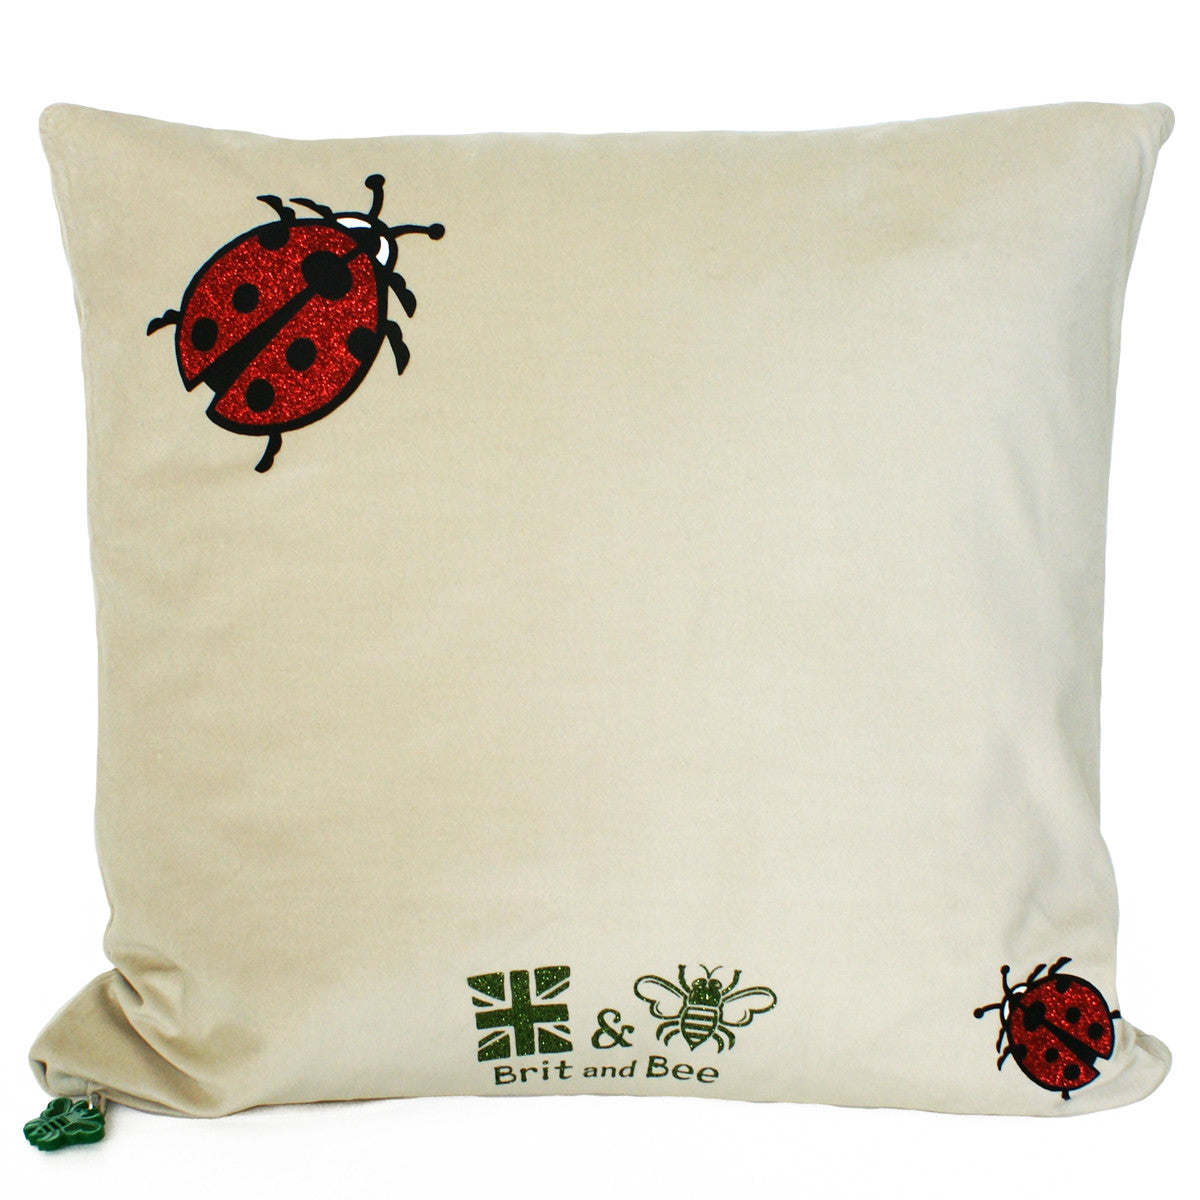 Brit and Bee Lillies and Ladybirds Throw Pillow BACK